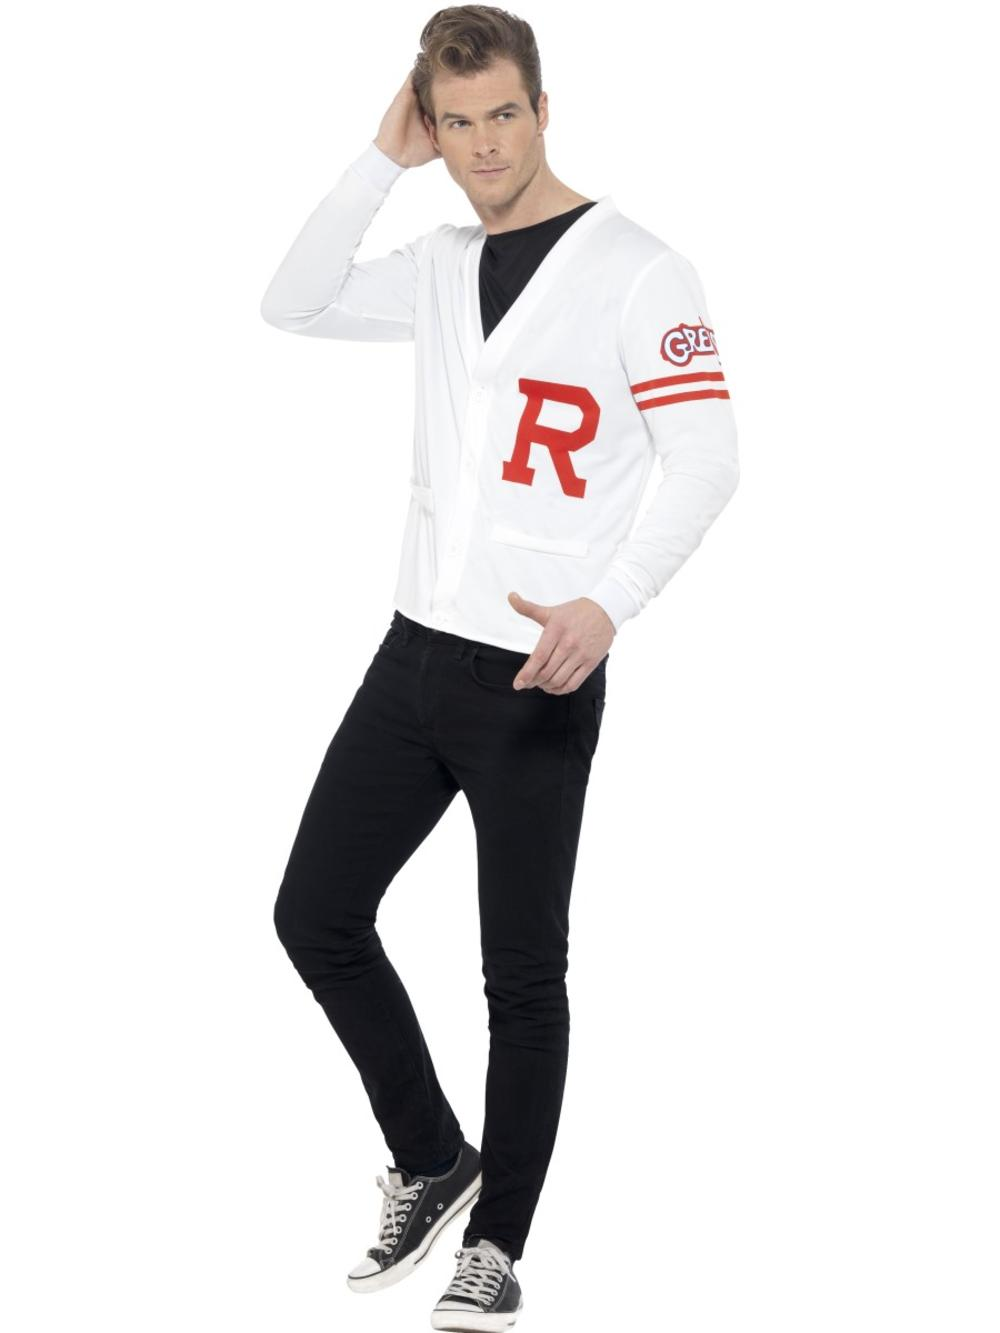 Grease Rydell Prep Mens Fancy Dress 1950s High School Character Adults Costume